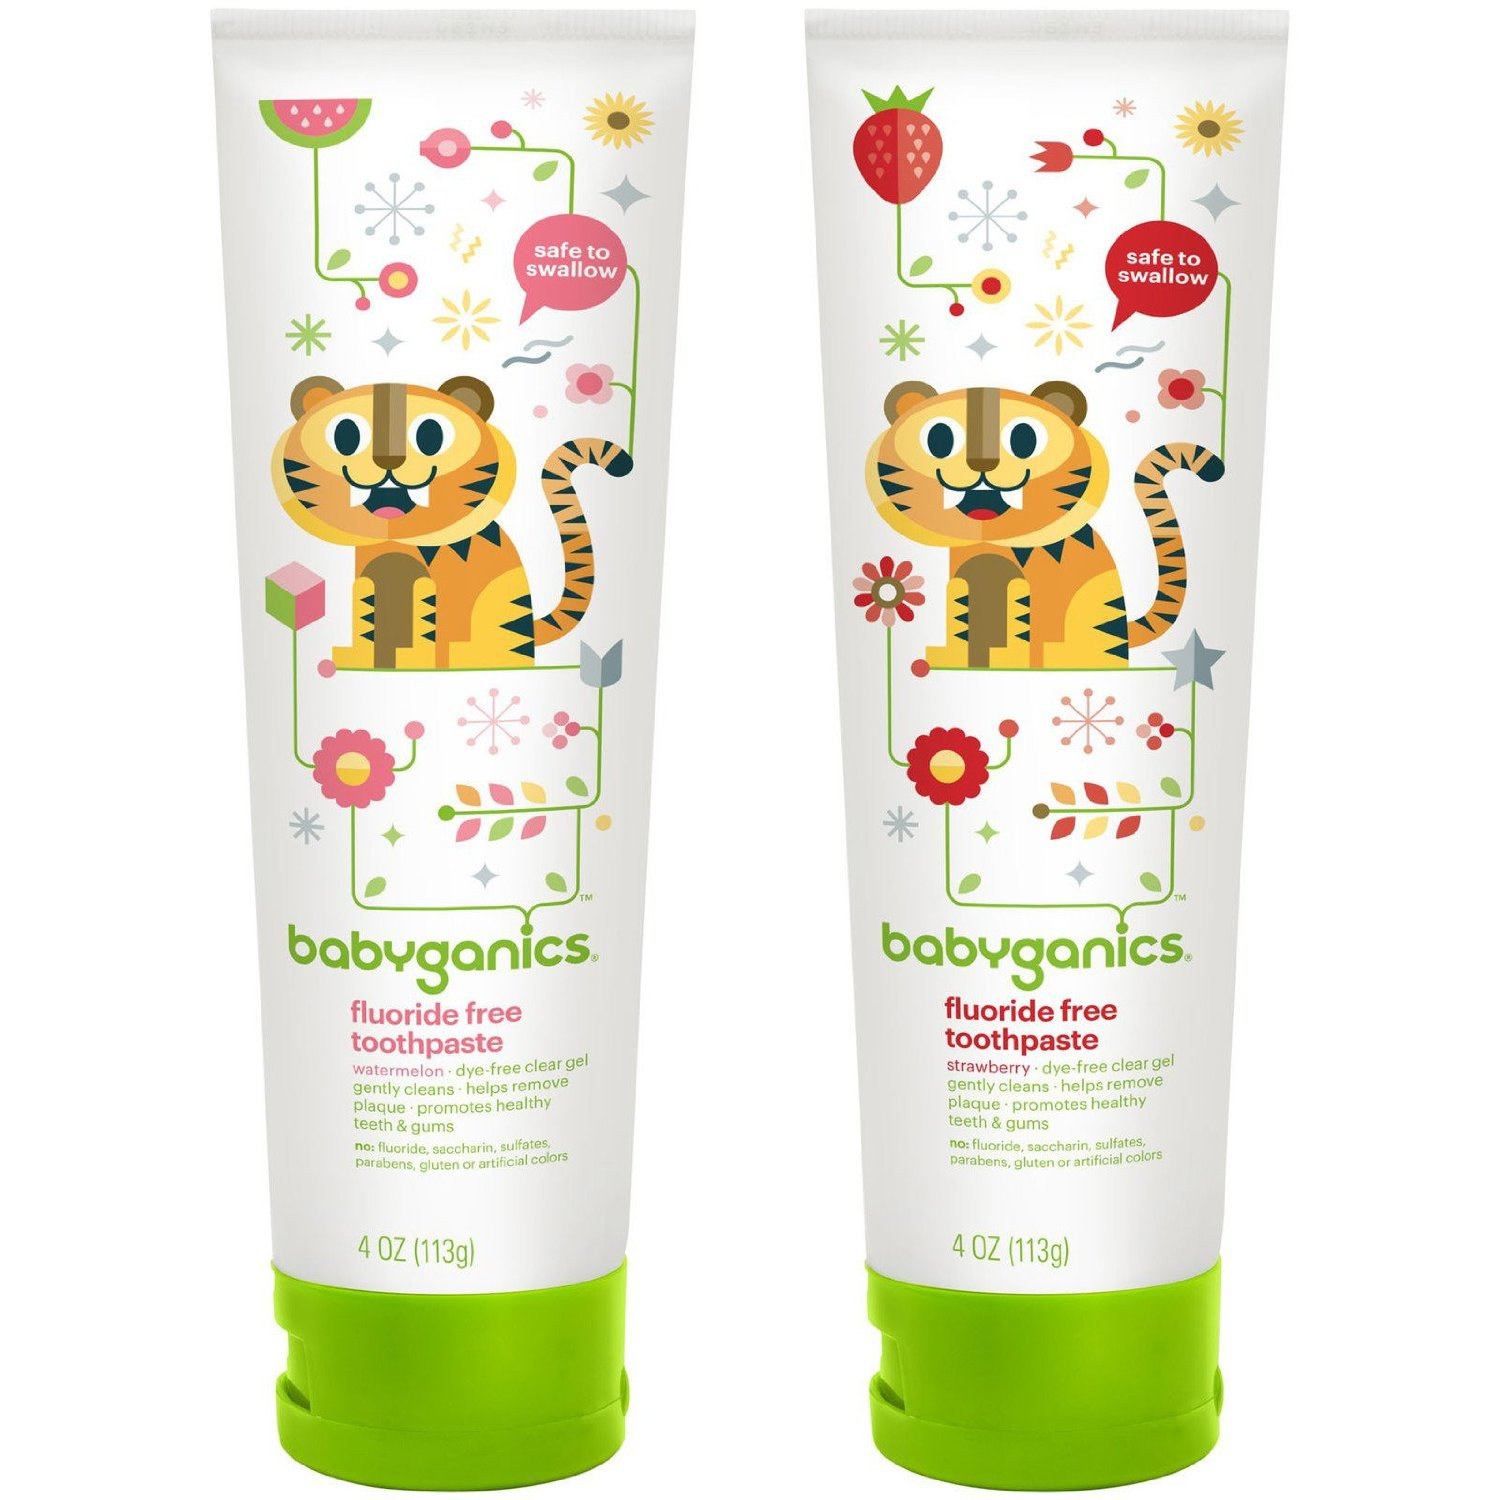 BabyGanics Fluoride Free Toothpaste 4 oz Twin Pack Watermelon